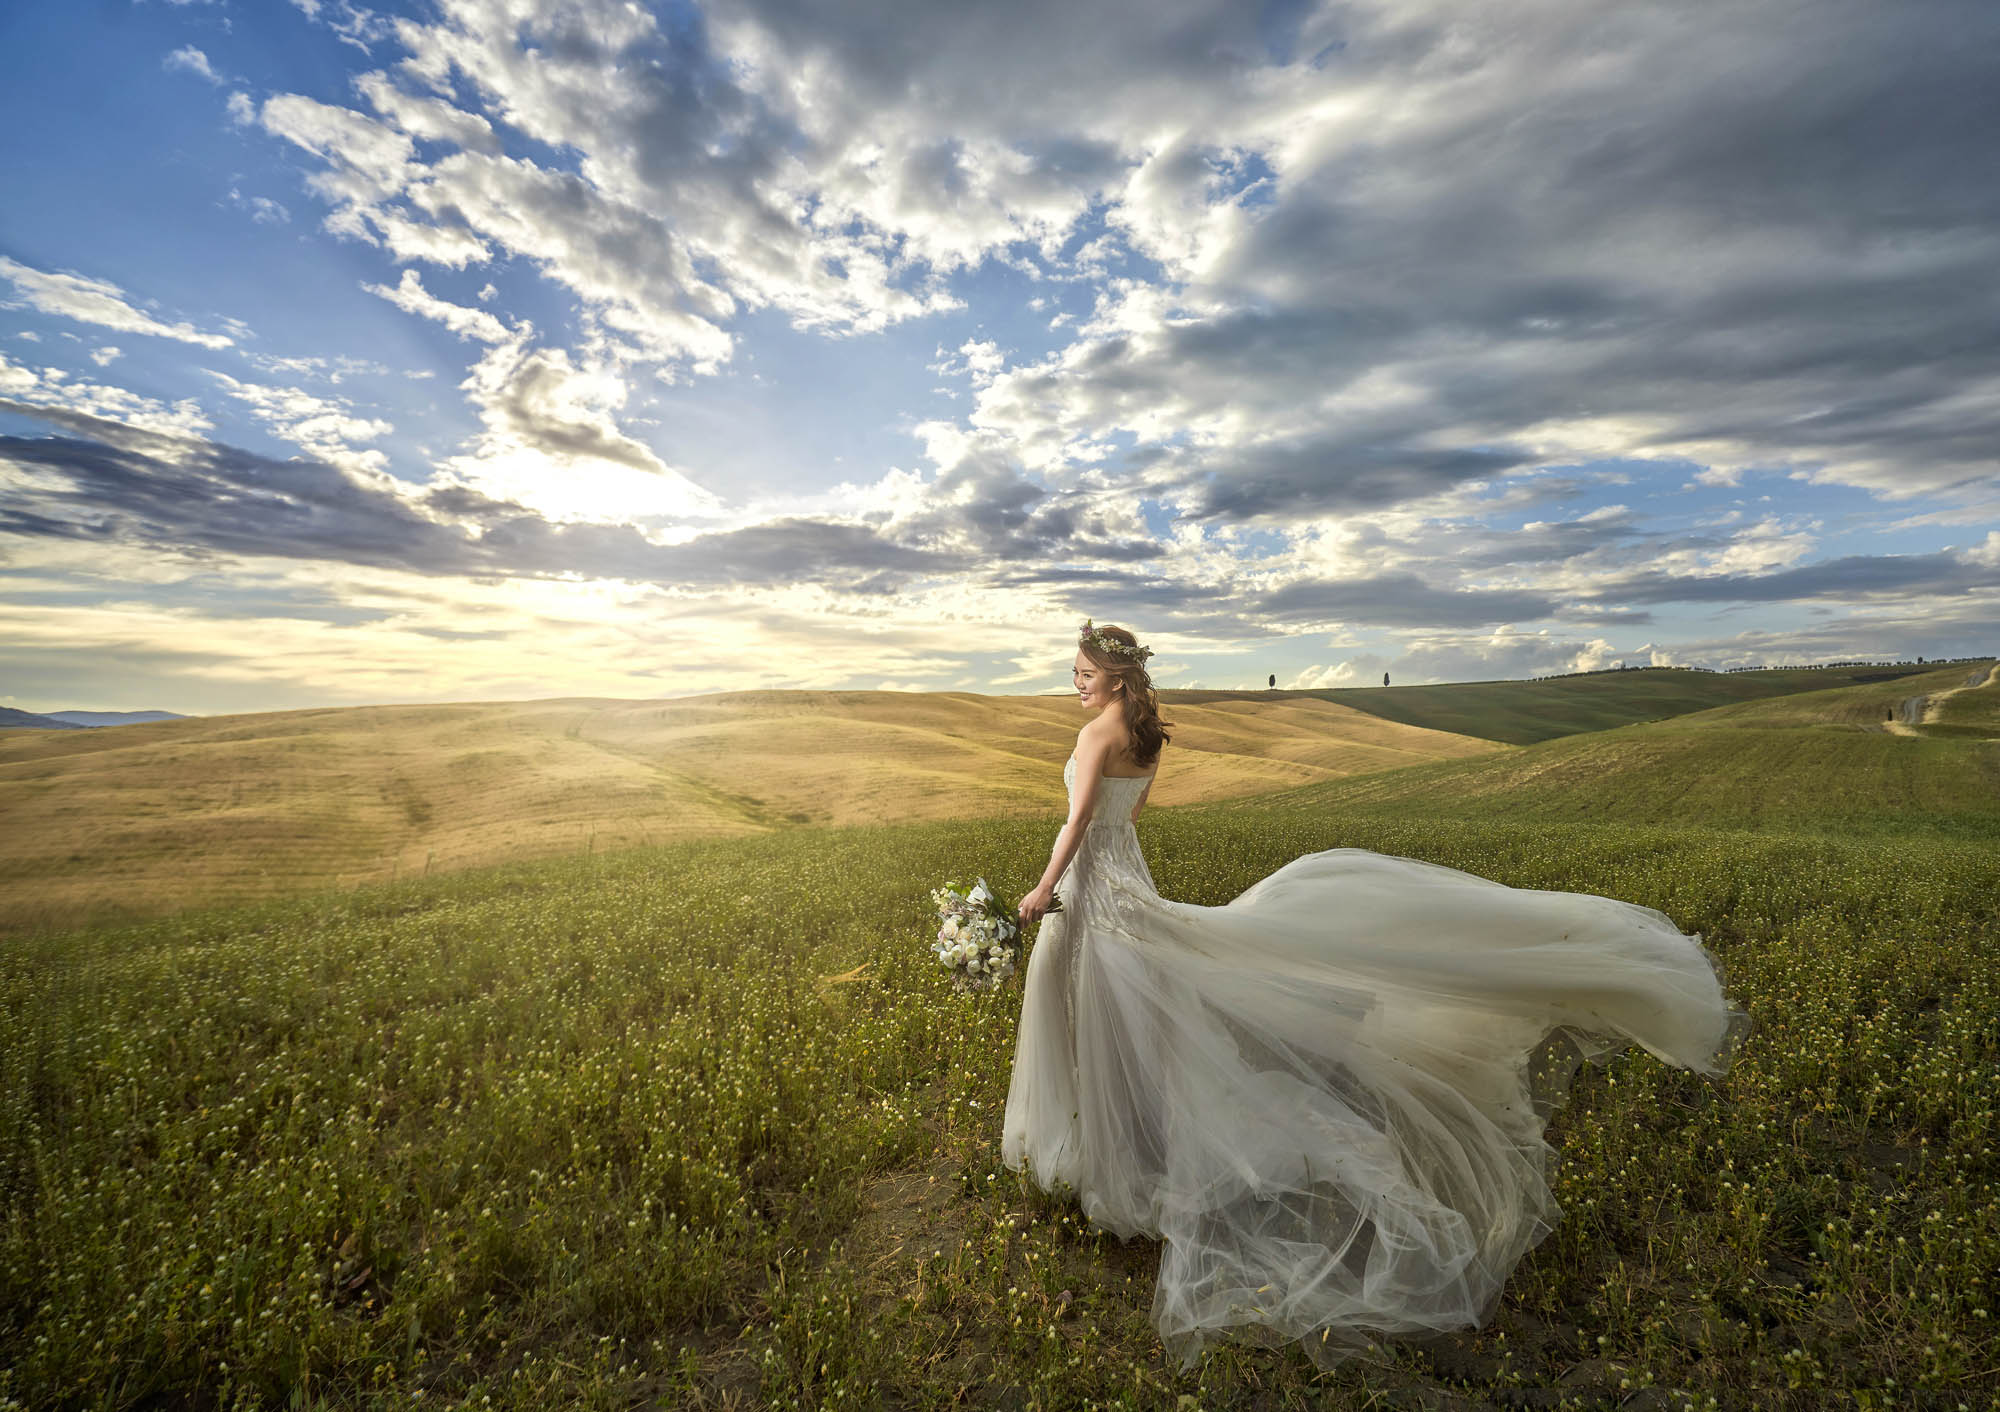 Bride in flowing tulle gown in field of grass, by CM Leung